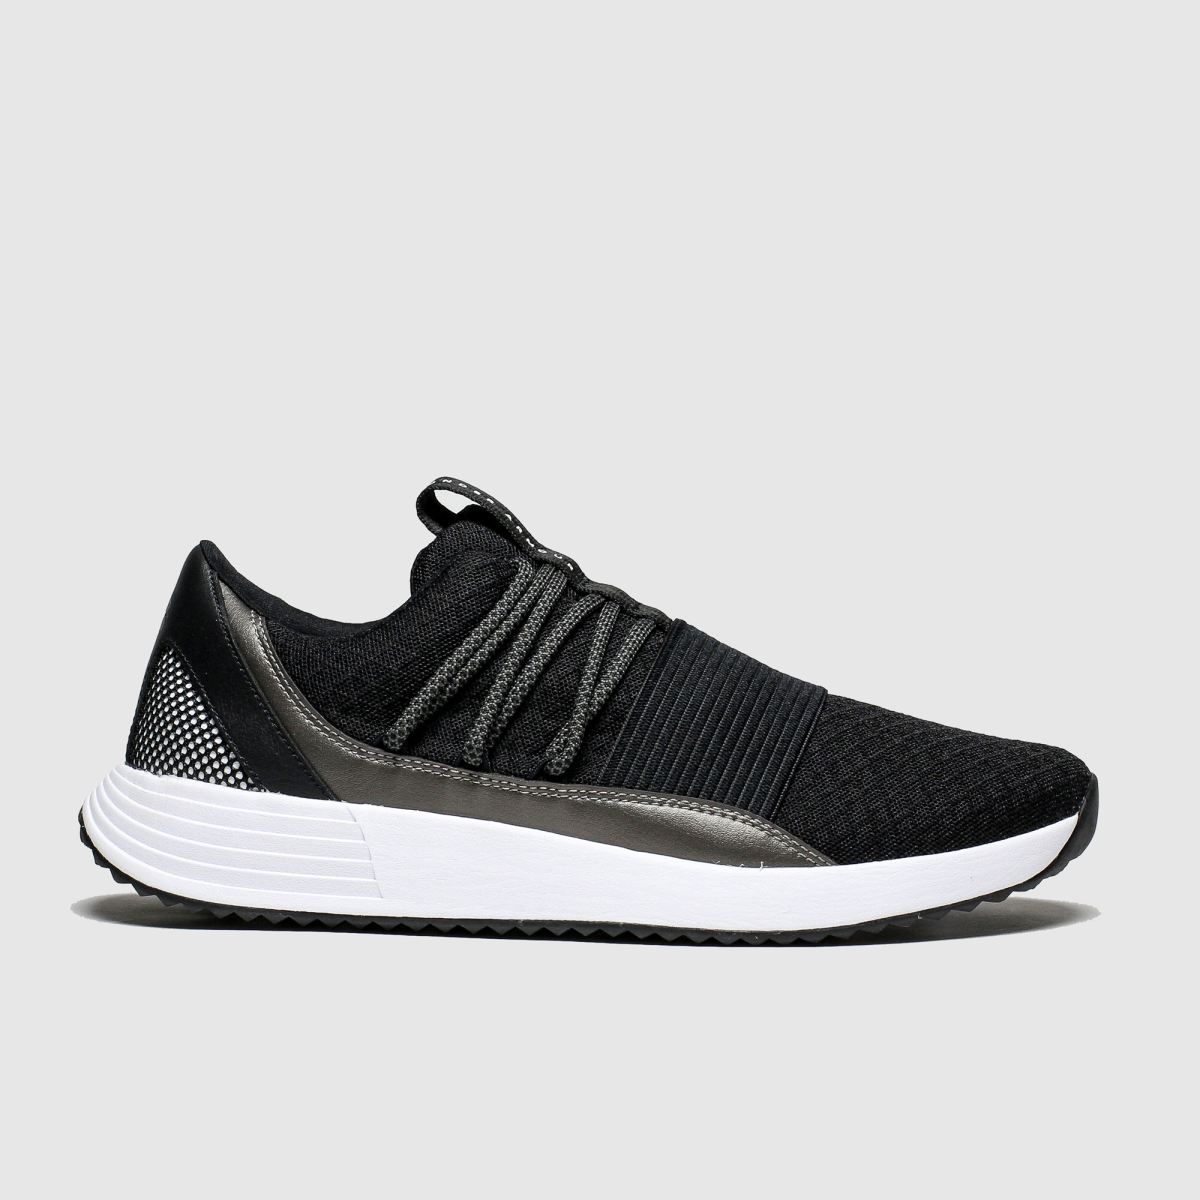 Under Armour Black & White Breathe Lace Trainers